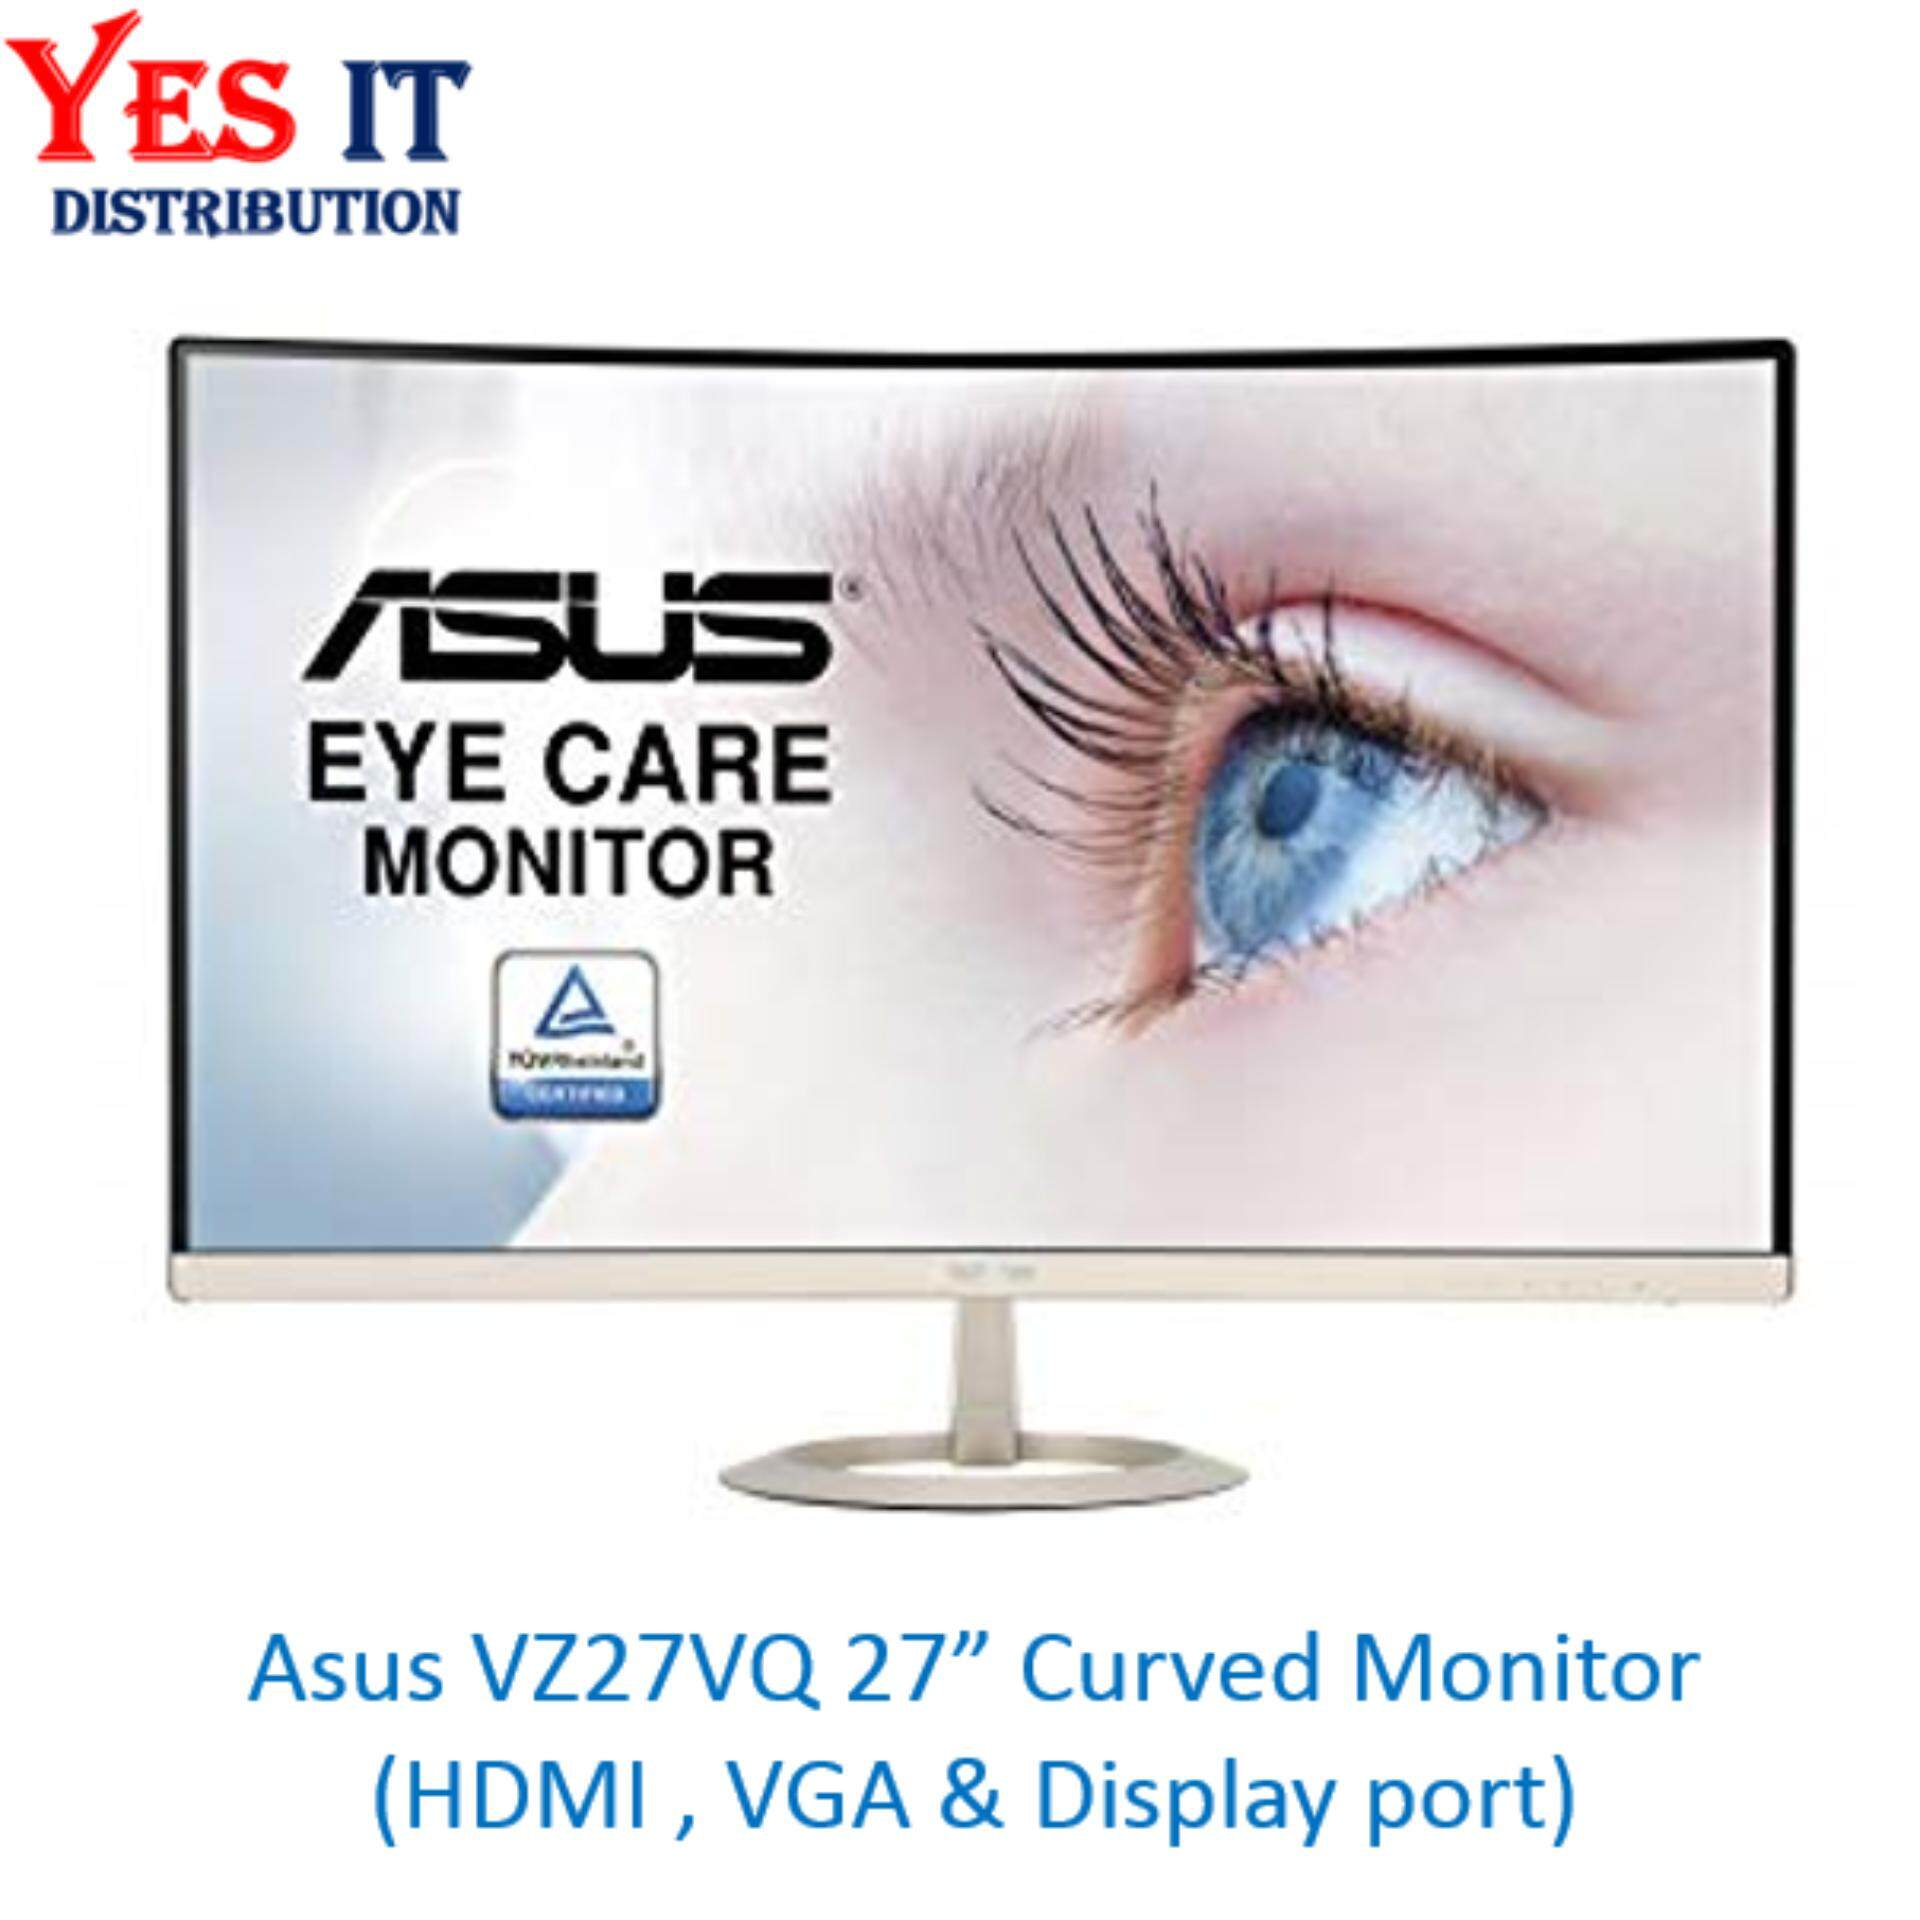 Asus Computer Accessories Monitors Price In Malaysia Best Monitor Vc279h Eye Care Frameless 27 Full Hd Ips Speaker Tuv Vz27vq Curved Led 1080p Dphdmivga